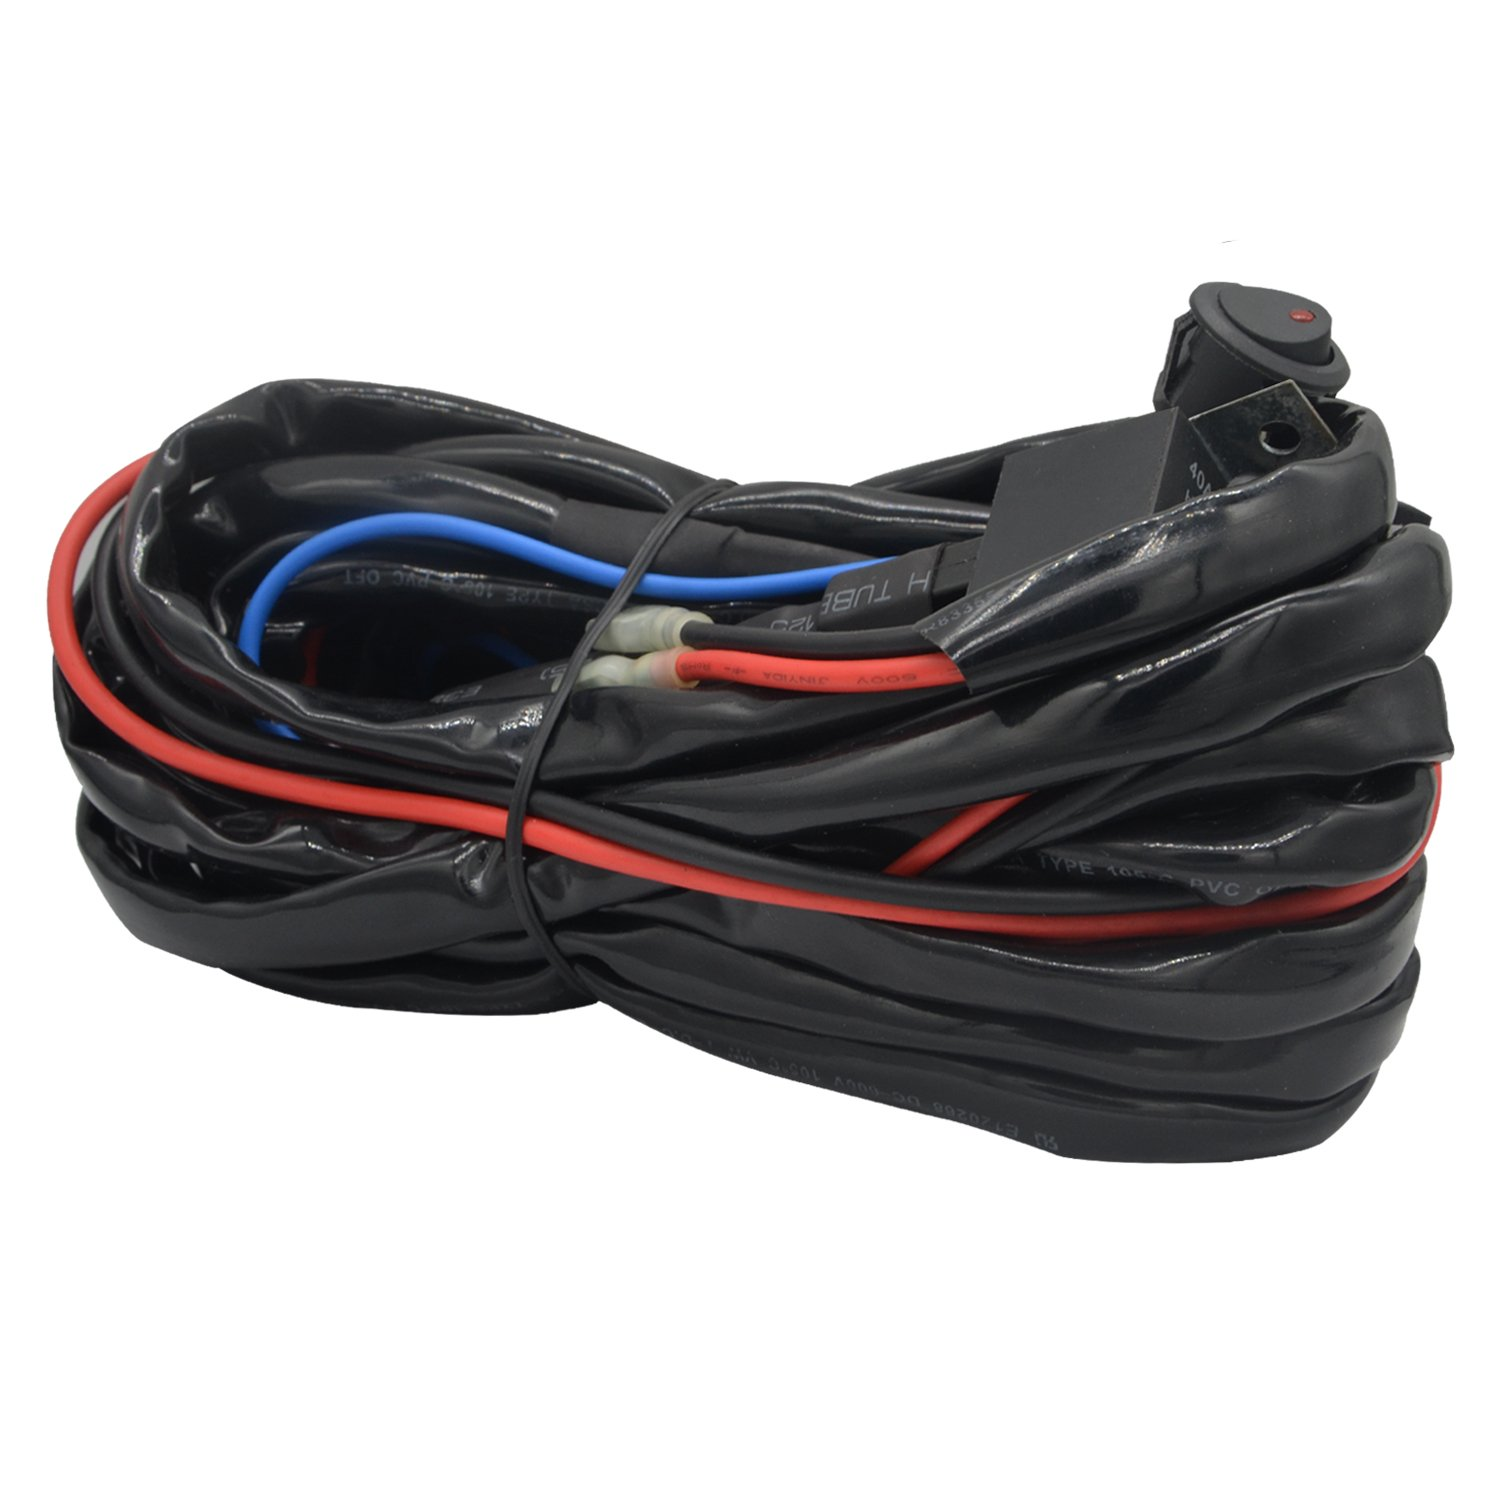 71hdbgsGjCL._SL1500_ amazon com wiring harnesses electrical automotive ksc-wa100 wiring harness at reclaimingppi.co